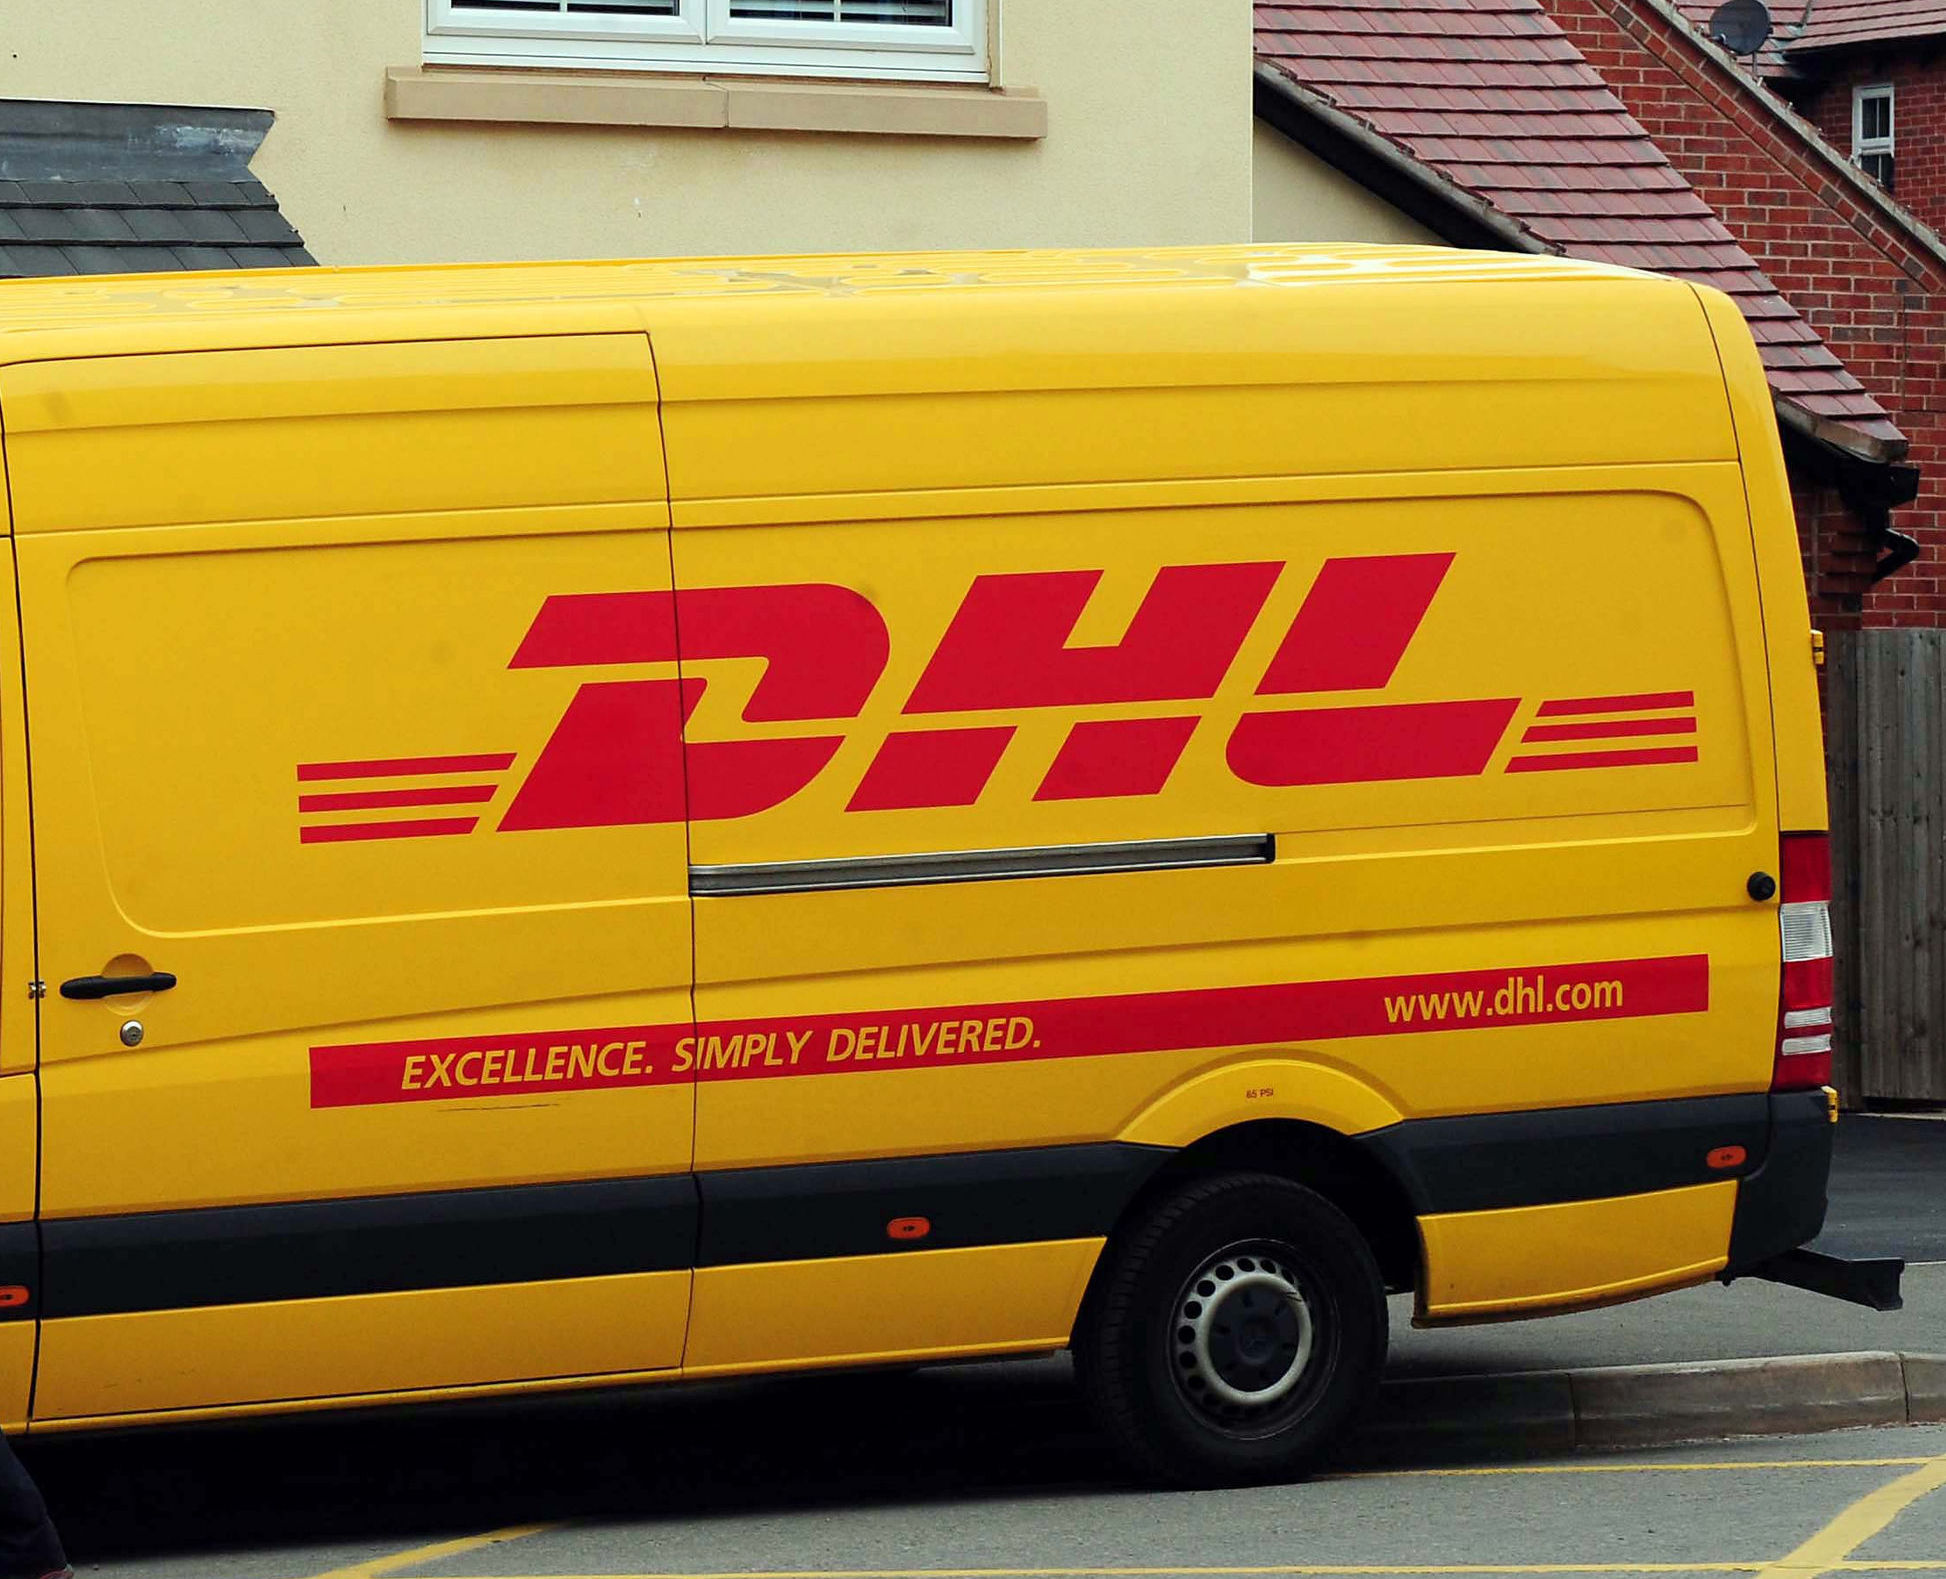 Alino Basanga was working for DHL when he committed the sexual assault.